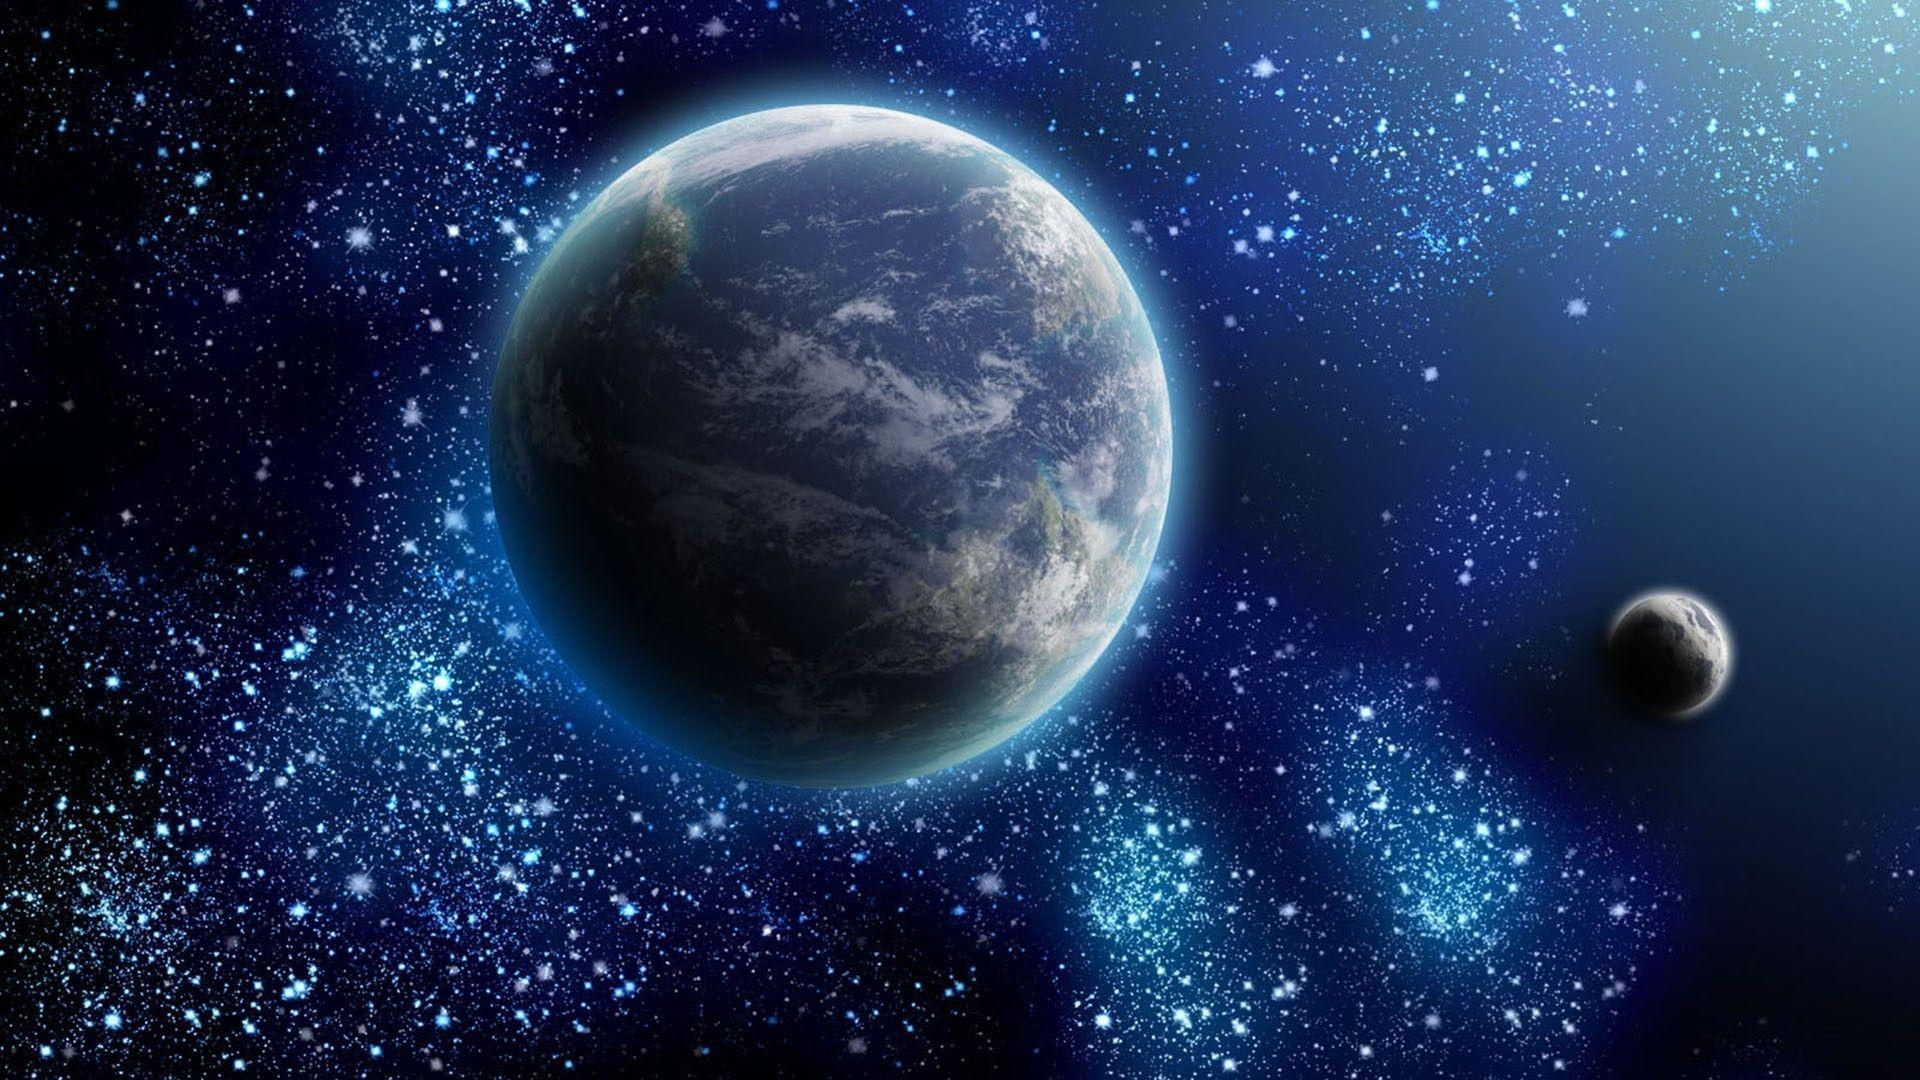 real planets and stars background - photo #14